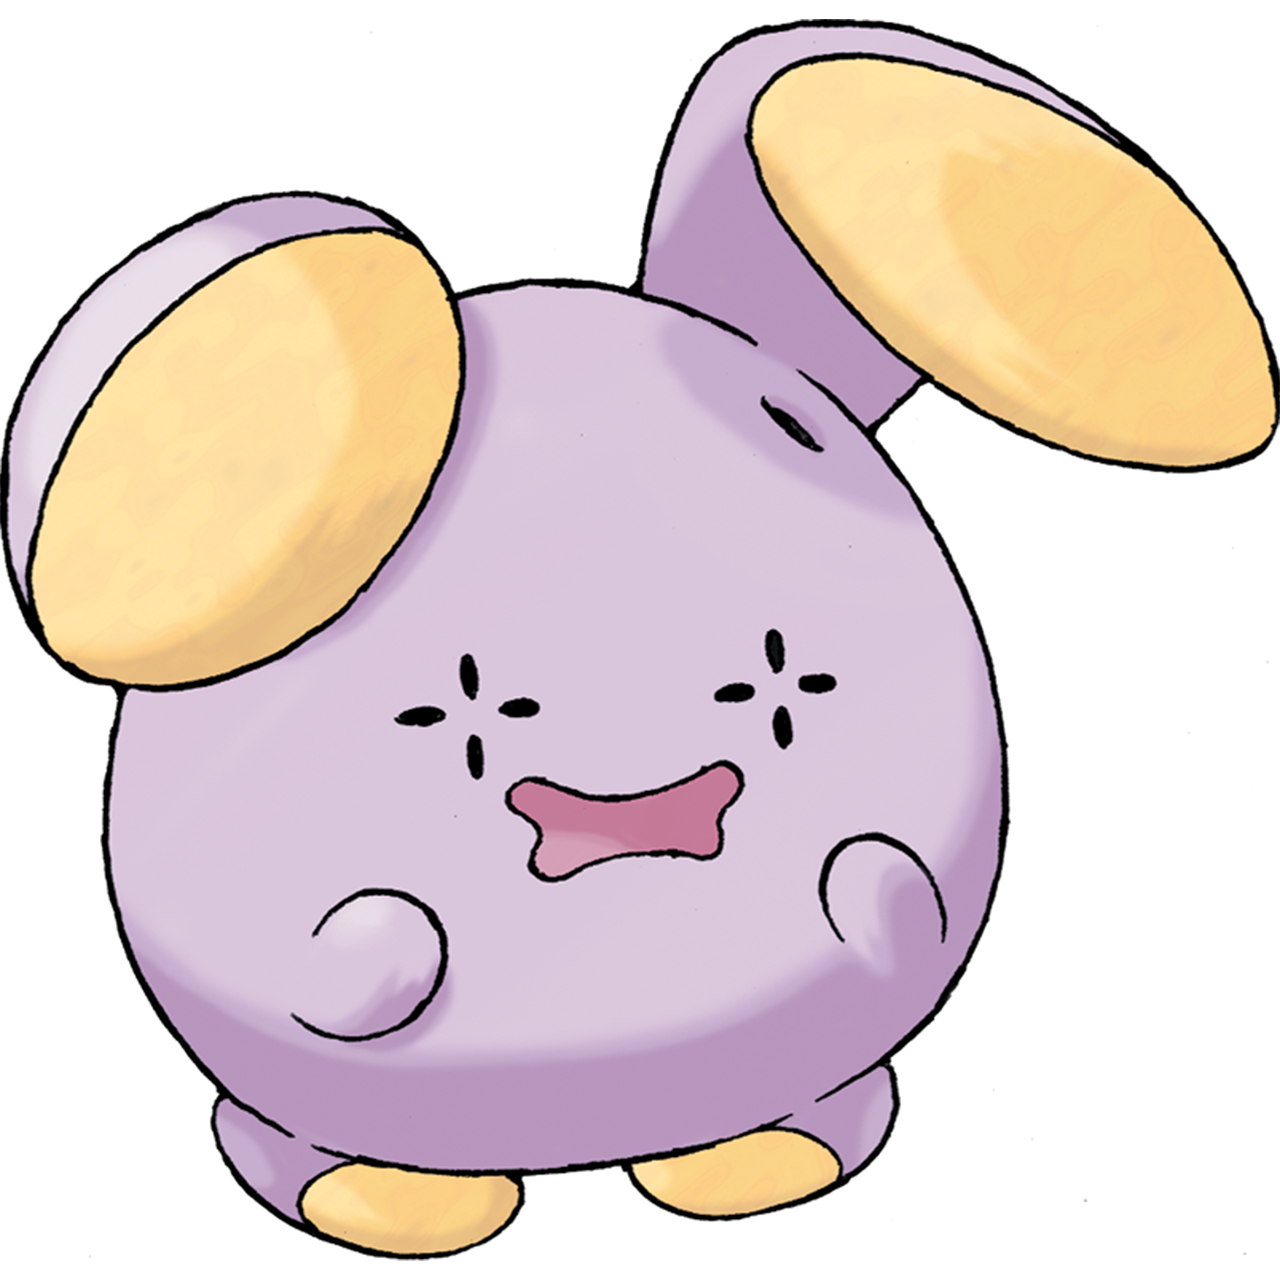 Image whismur png nintendo. Whisper clipart in ear